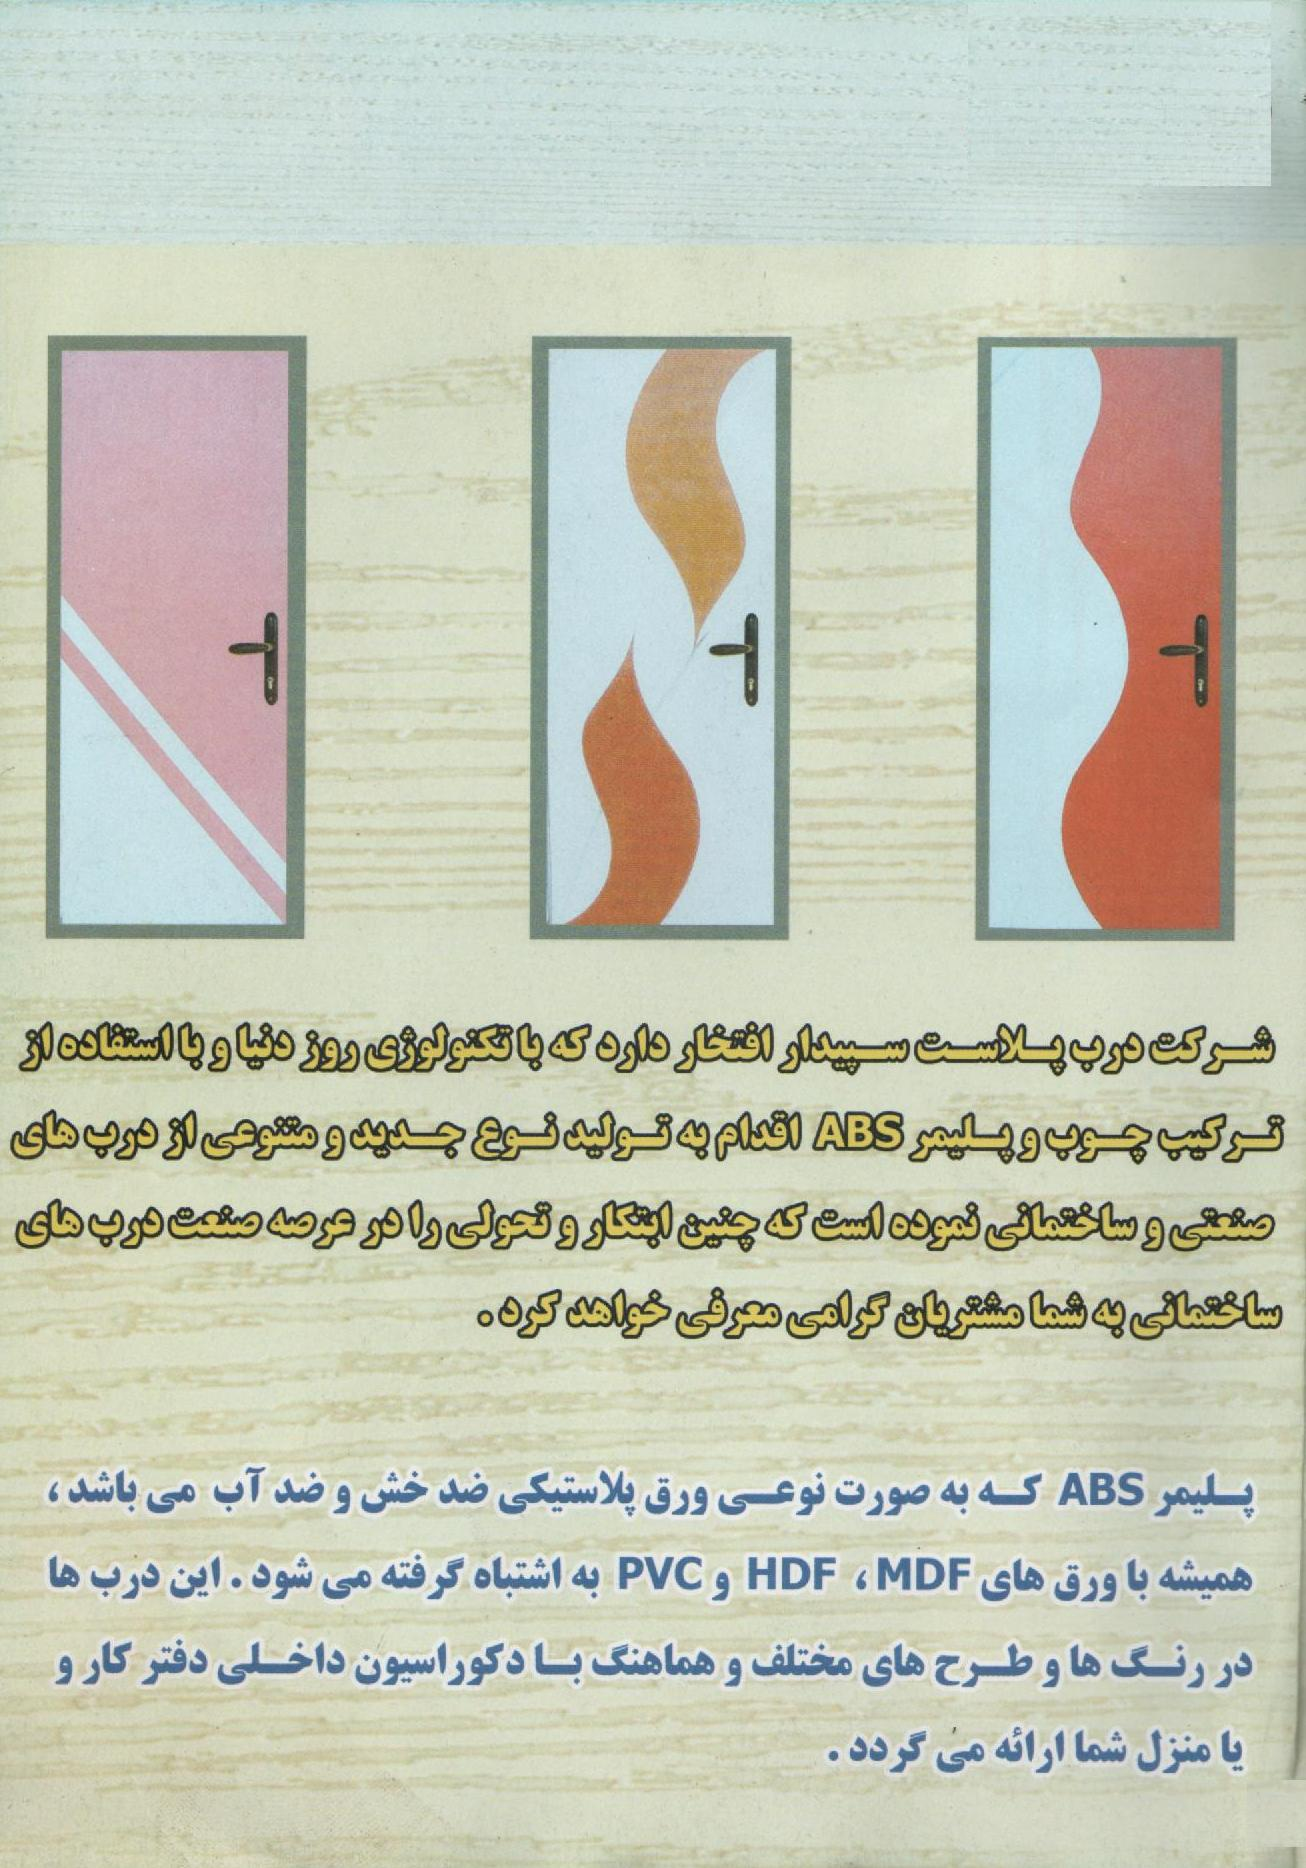 http://gdpars.persiangig.com/image/Shamsi%20005.jpg